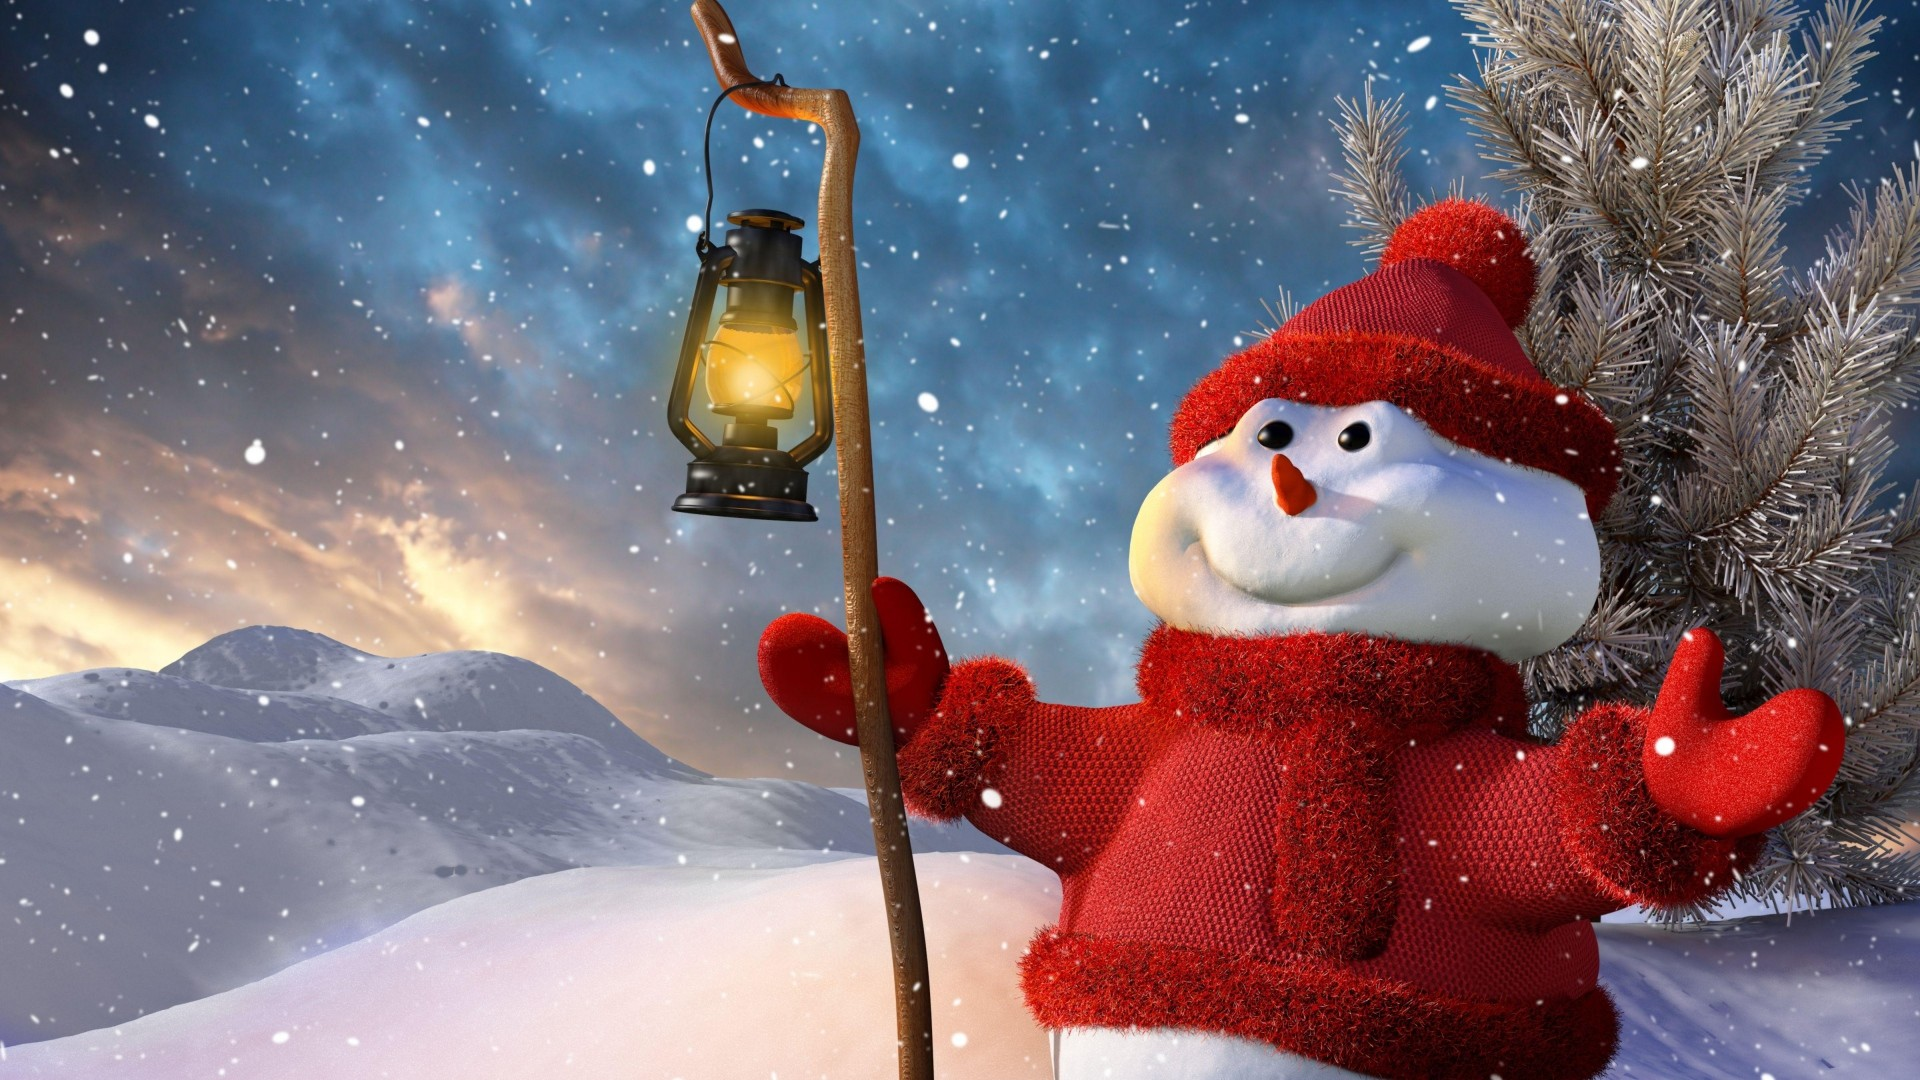 Christmas Wallpapers Snowman Cartoon